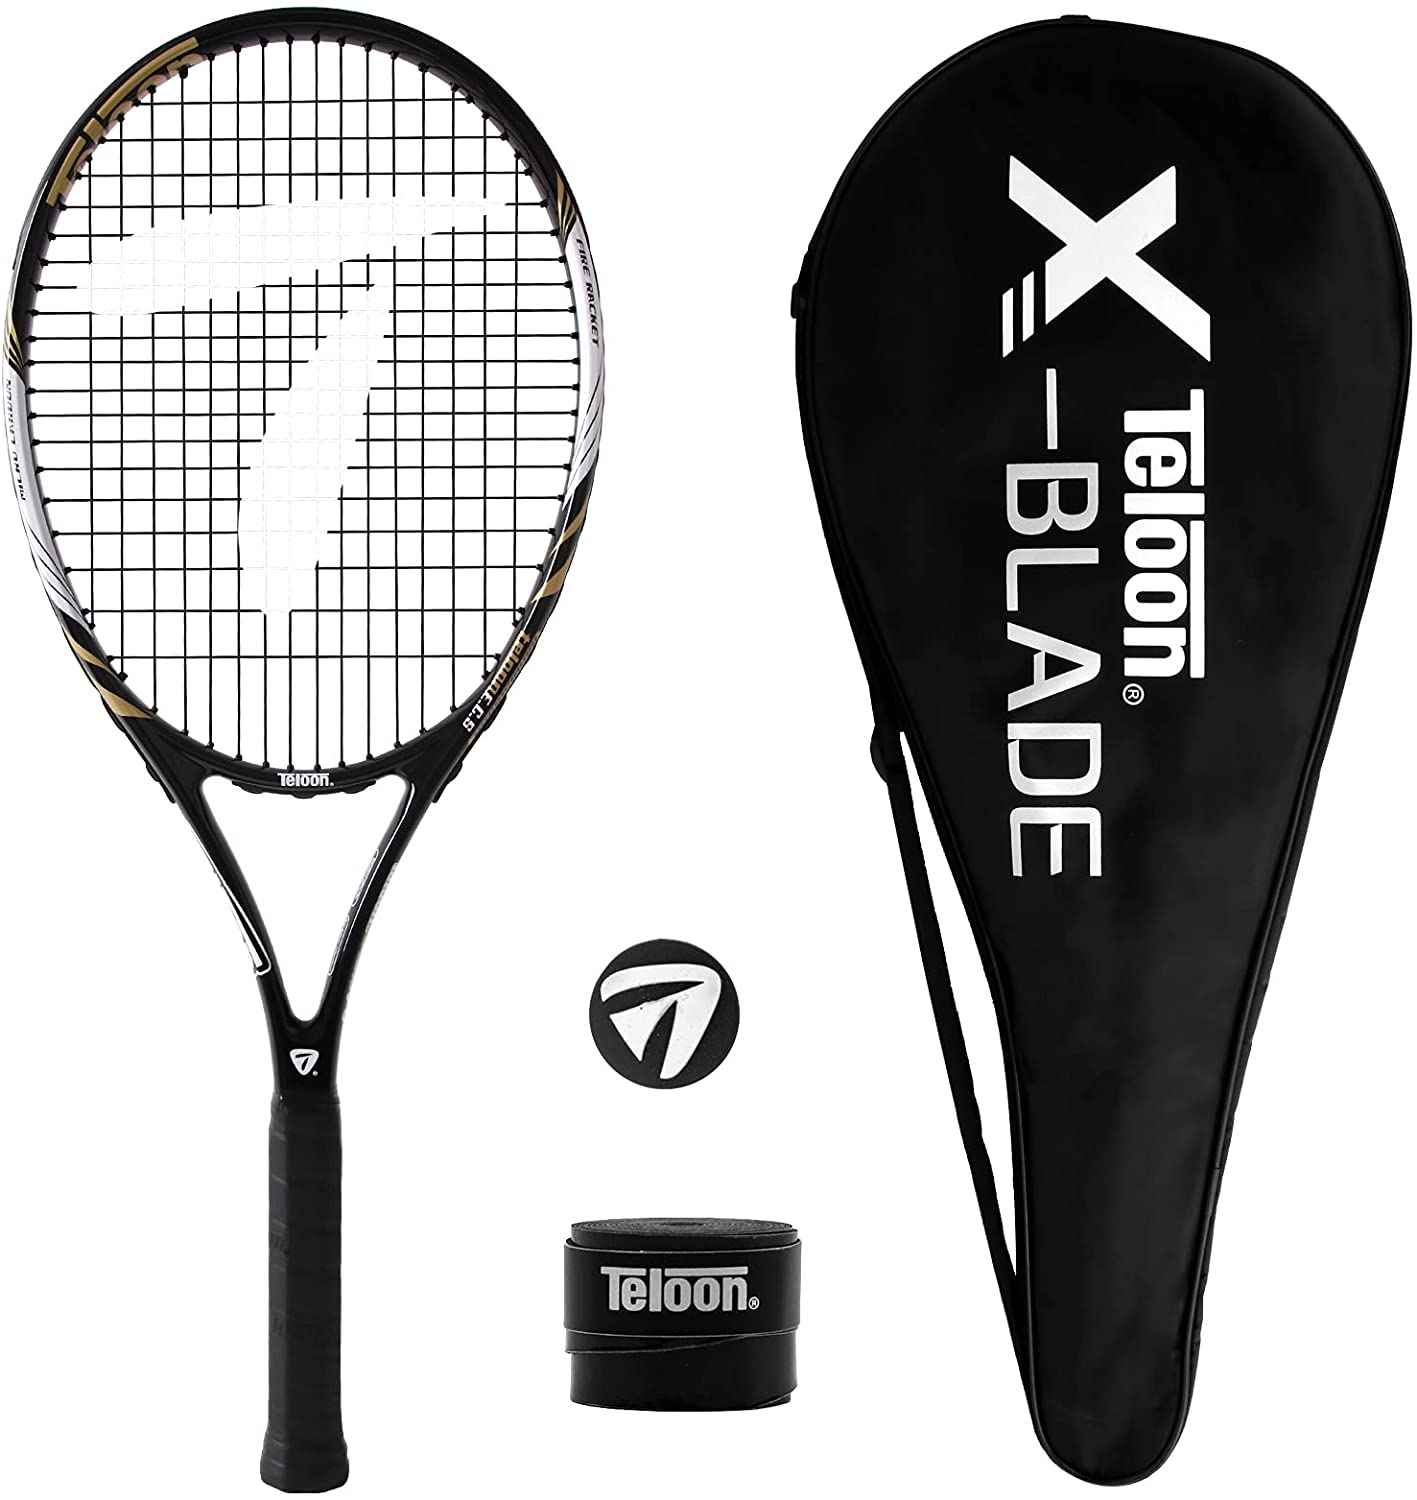 Teloon Recreational Adult New products world's highest Washington Mall quality popular Tennis inch Rackets-27 Racquet